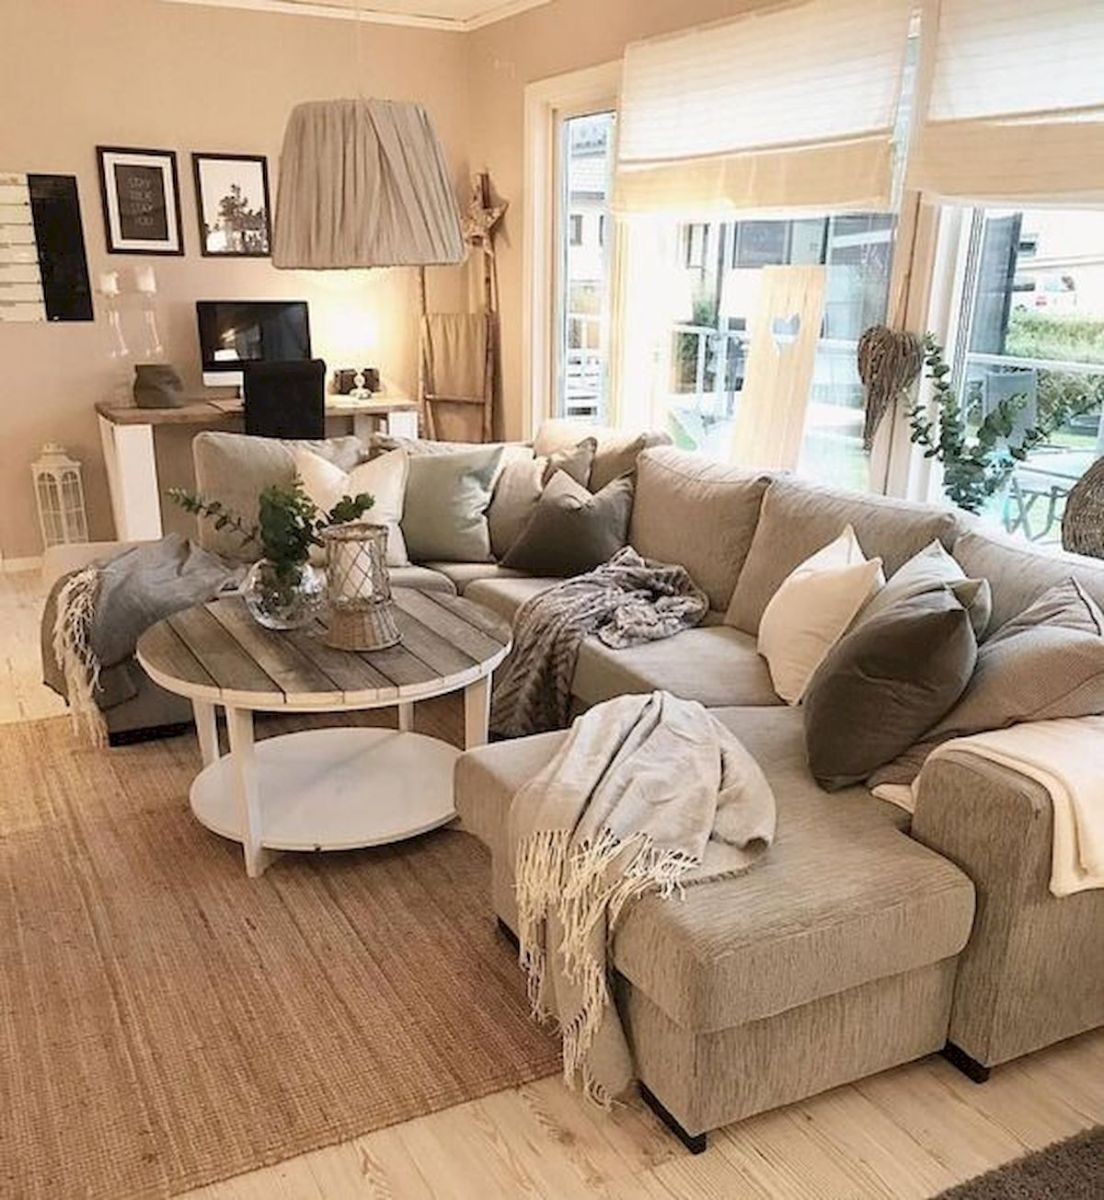 50 Gorgeous Living Room Decor and Design Ideas (50)